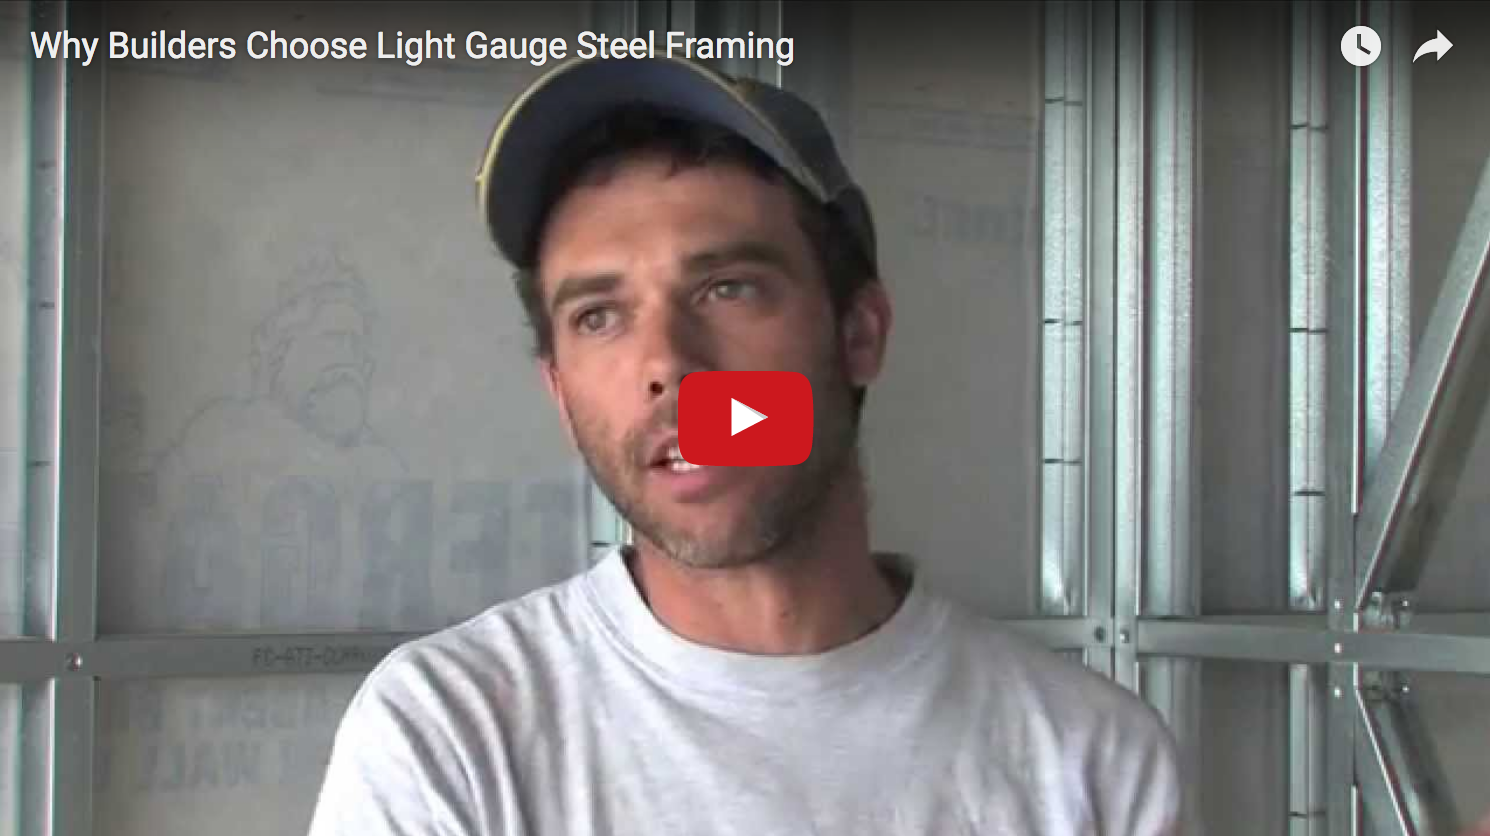 Hear first-hand why builders choose to work with LGS